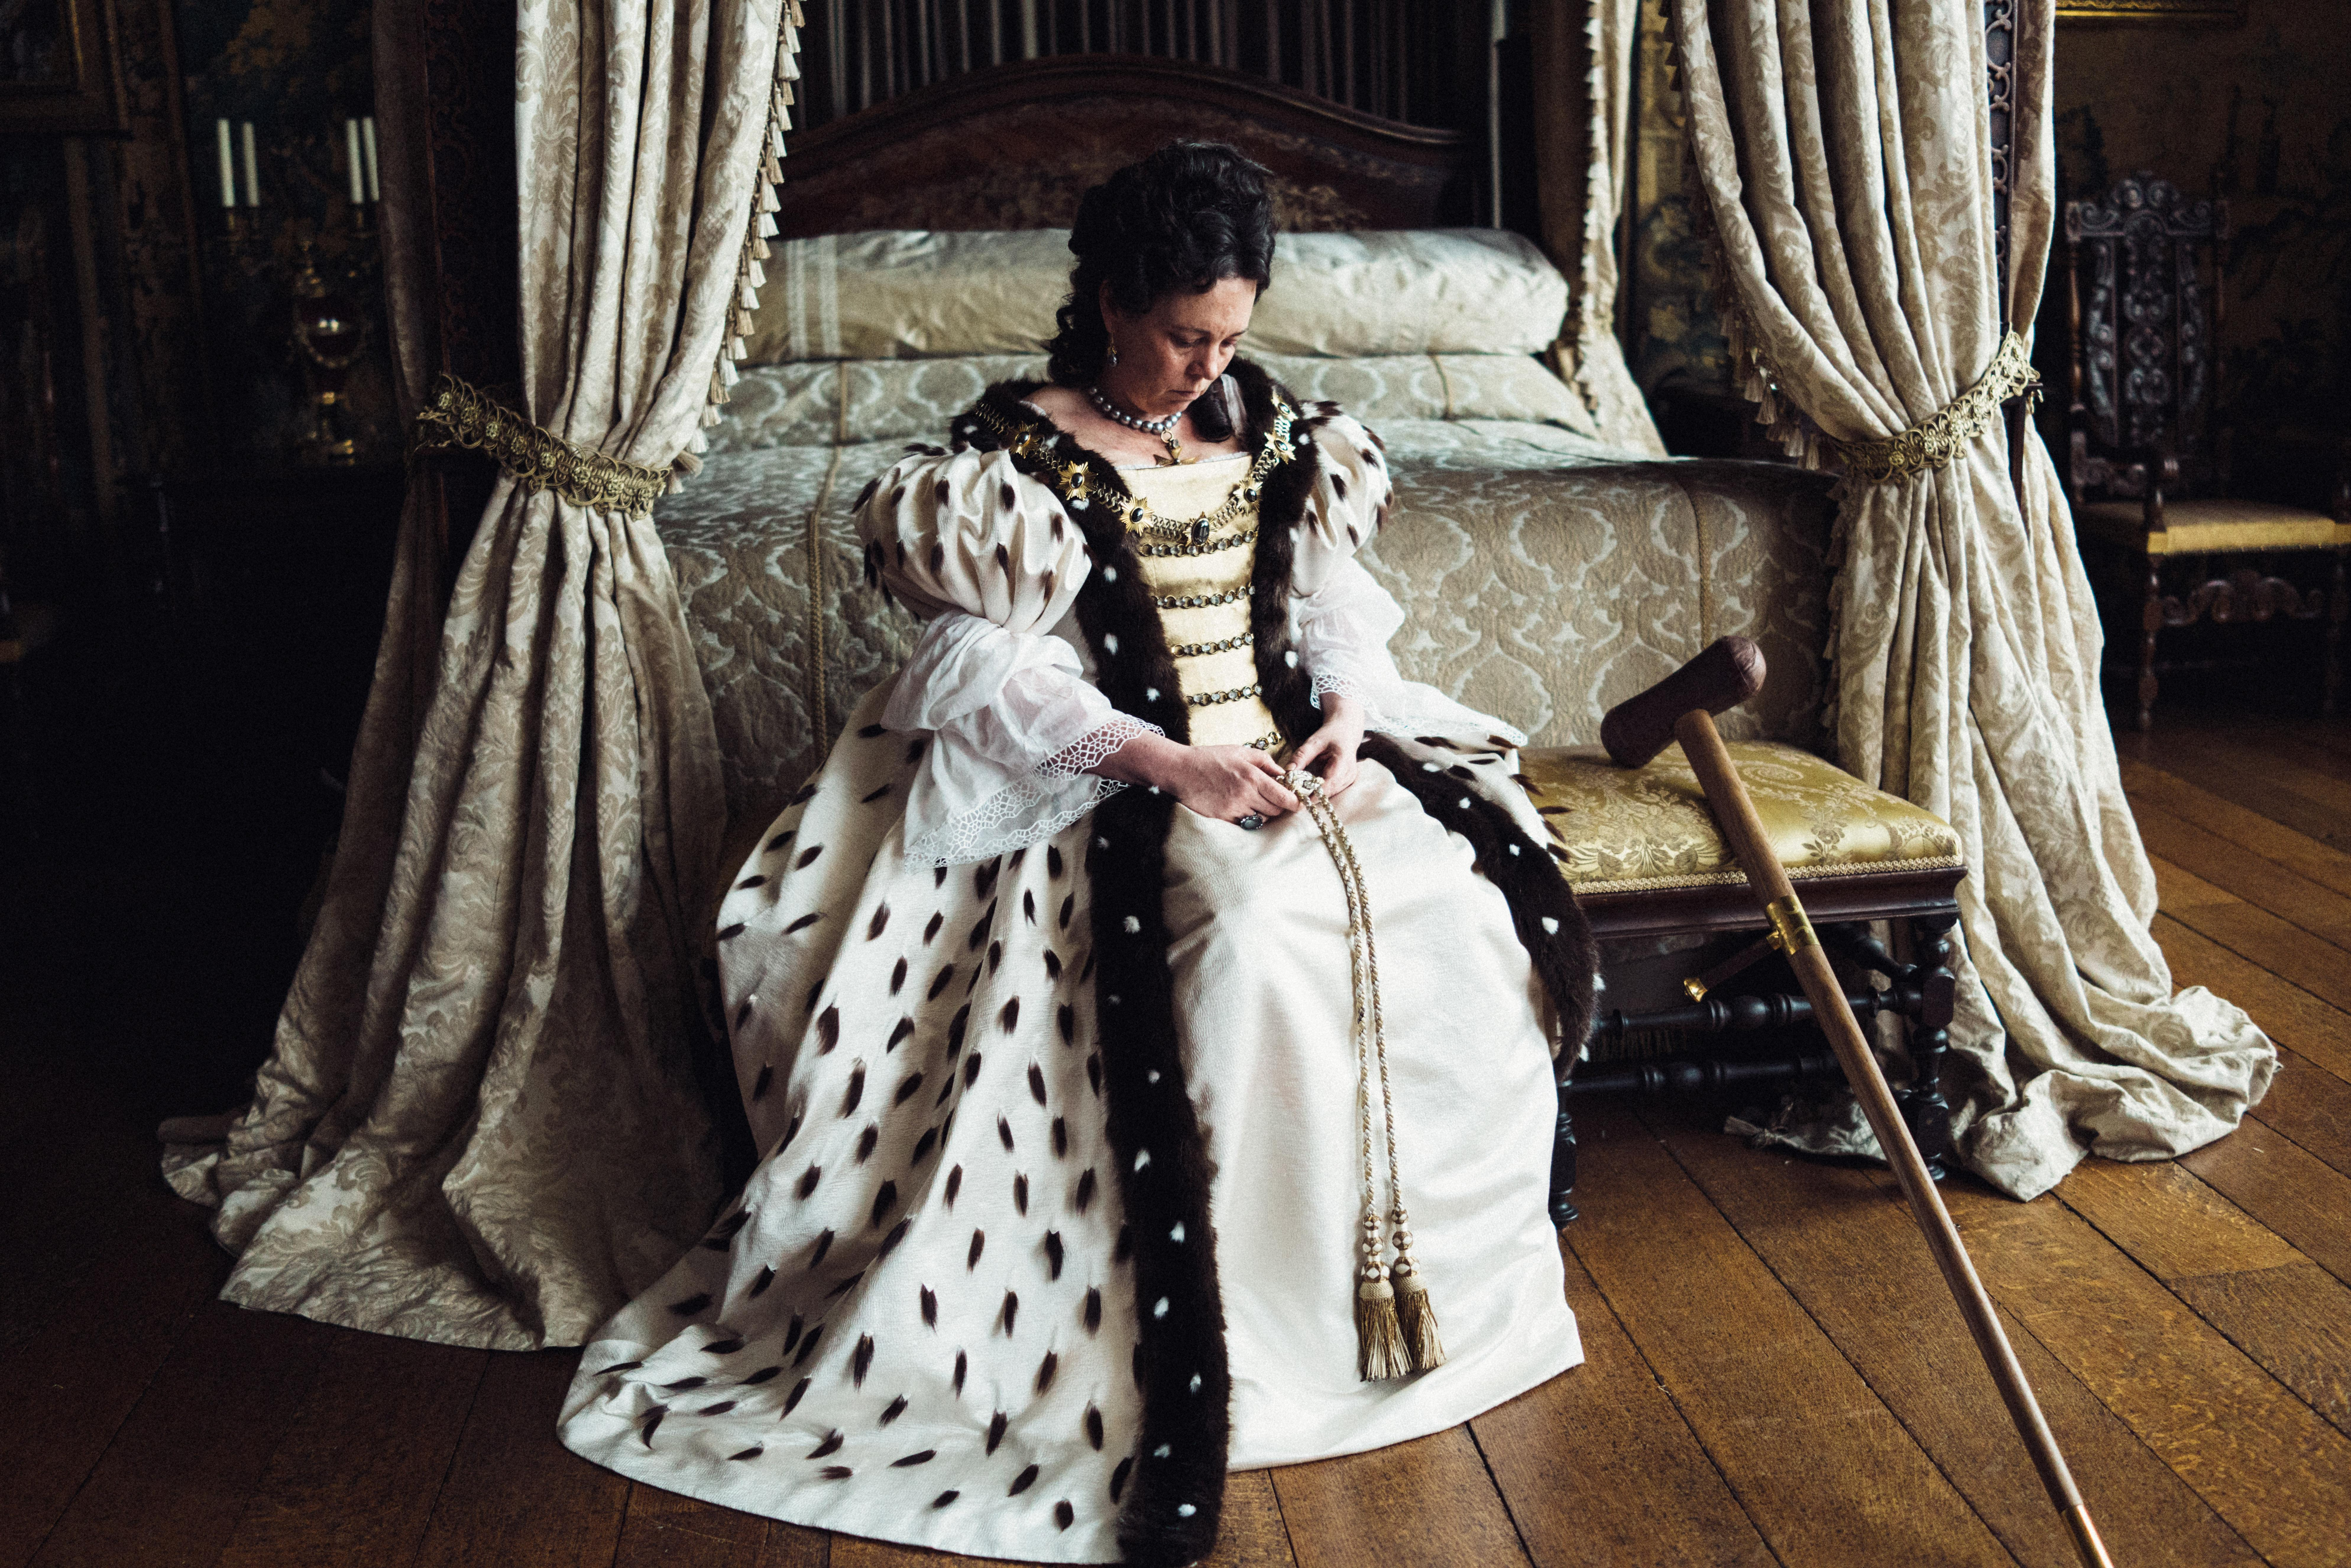 Olivia Colman in the film THE FAVOURITE. Photo by Yorgos Lanthimos.{ }© 2018 Twentieth Century Fox Film Corporation All Rights Reserved